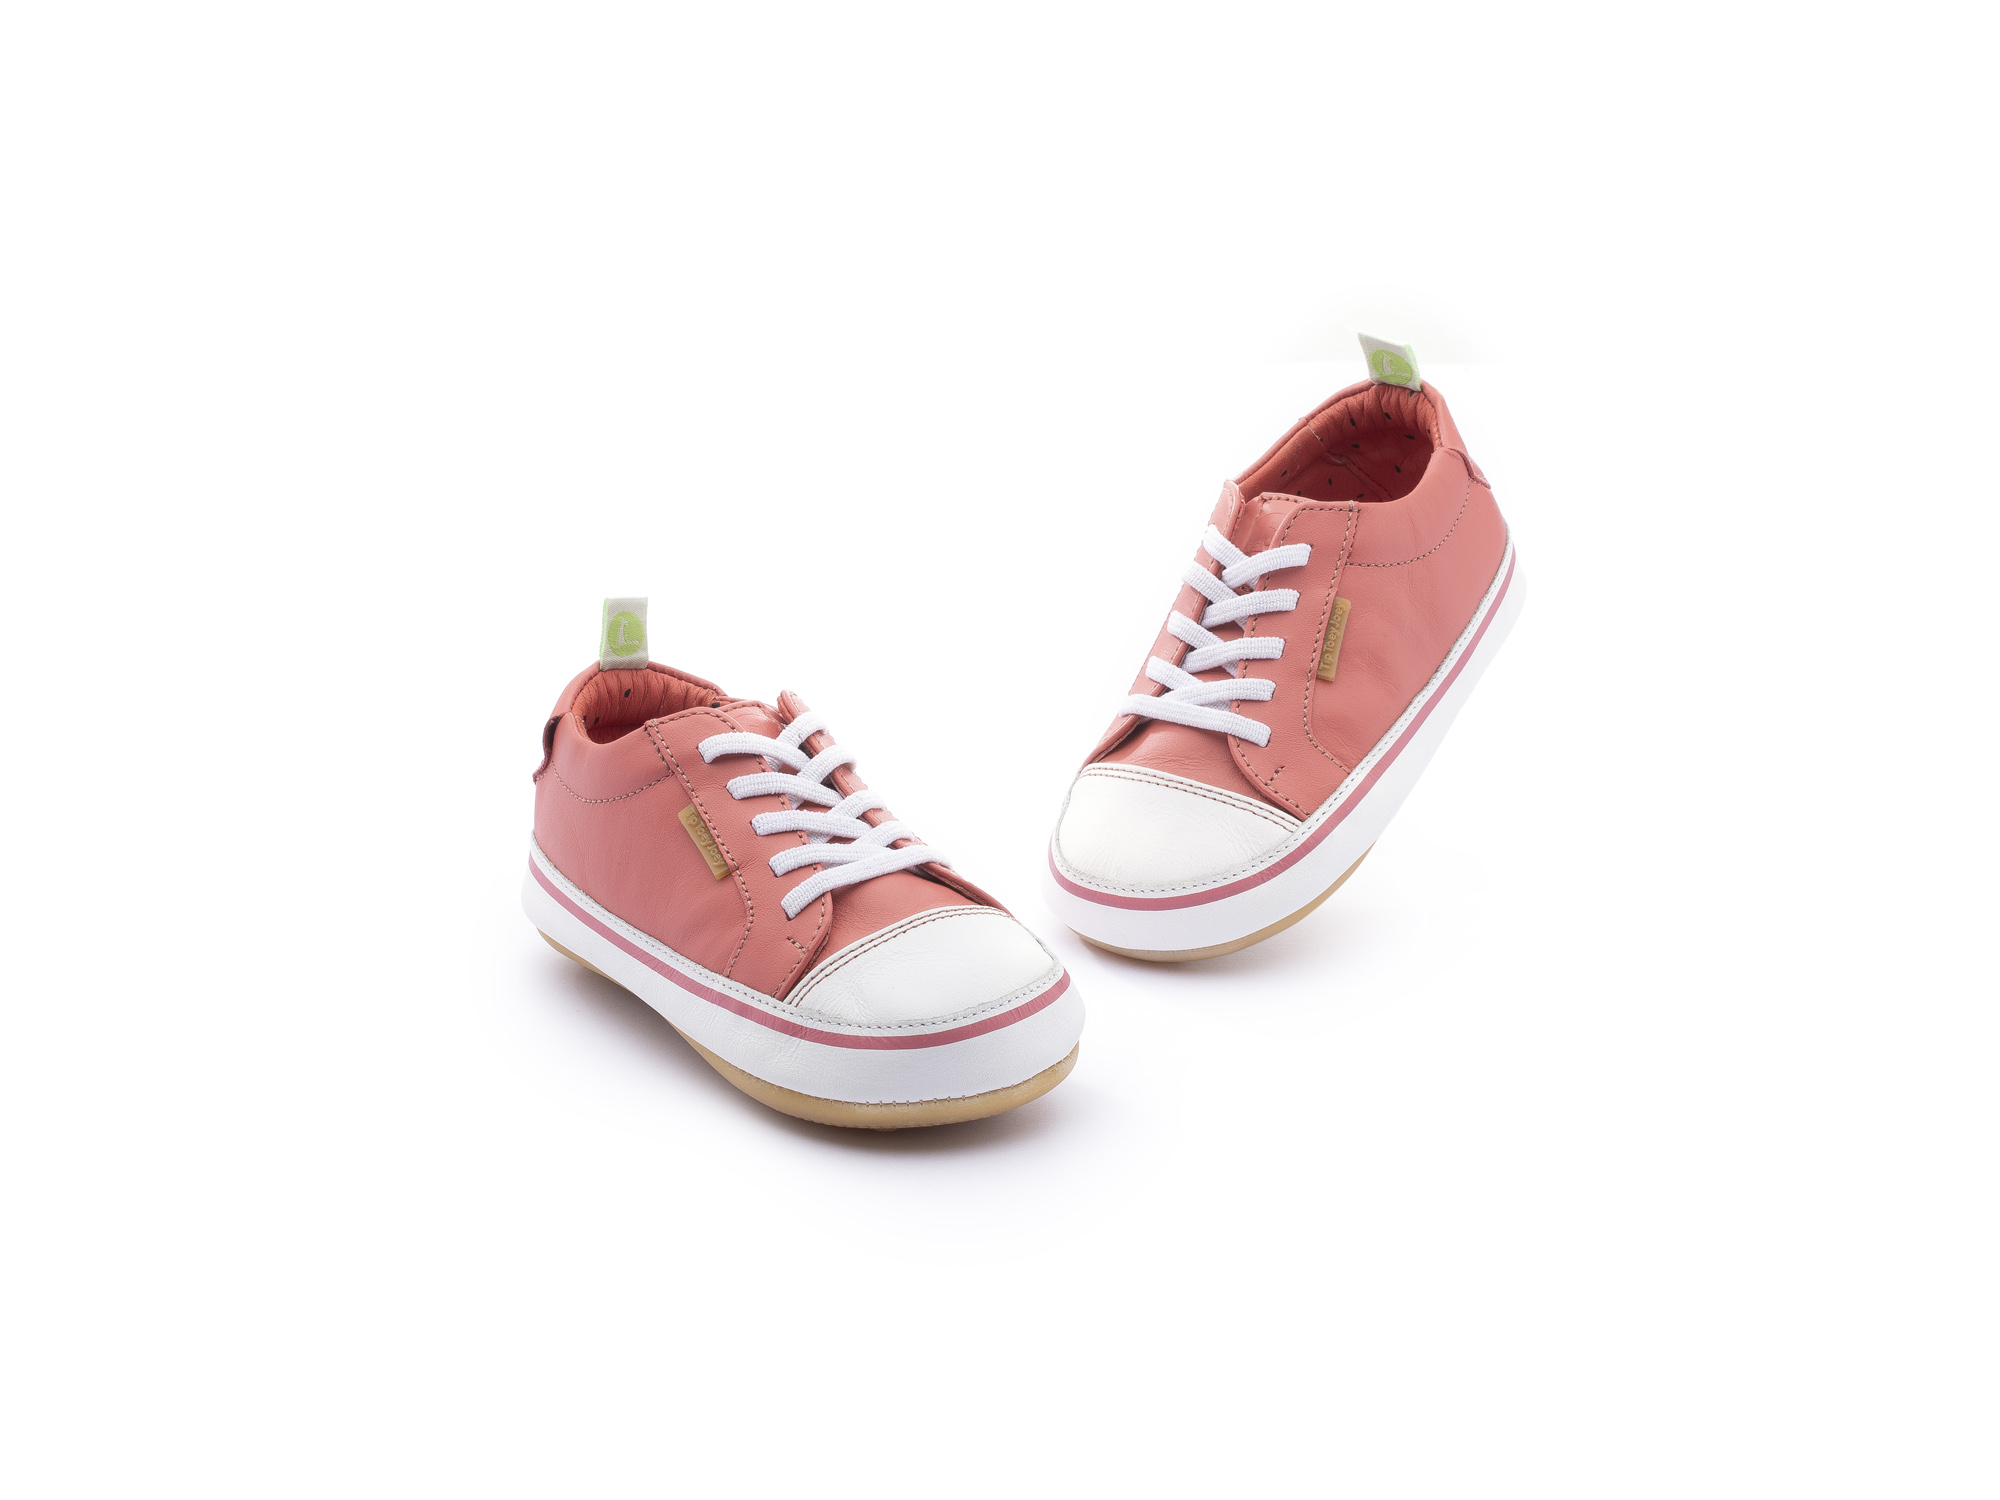 Sneaker Casual Funky Coral Matte Baby 0 à 2 anos - 3